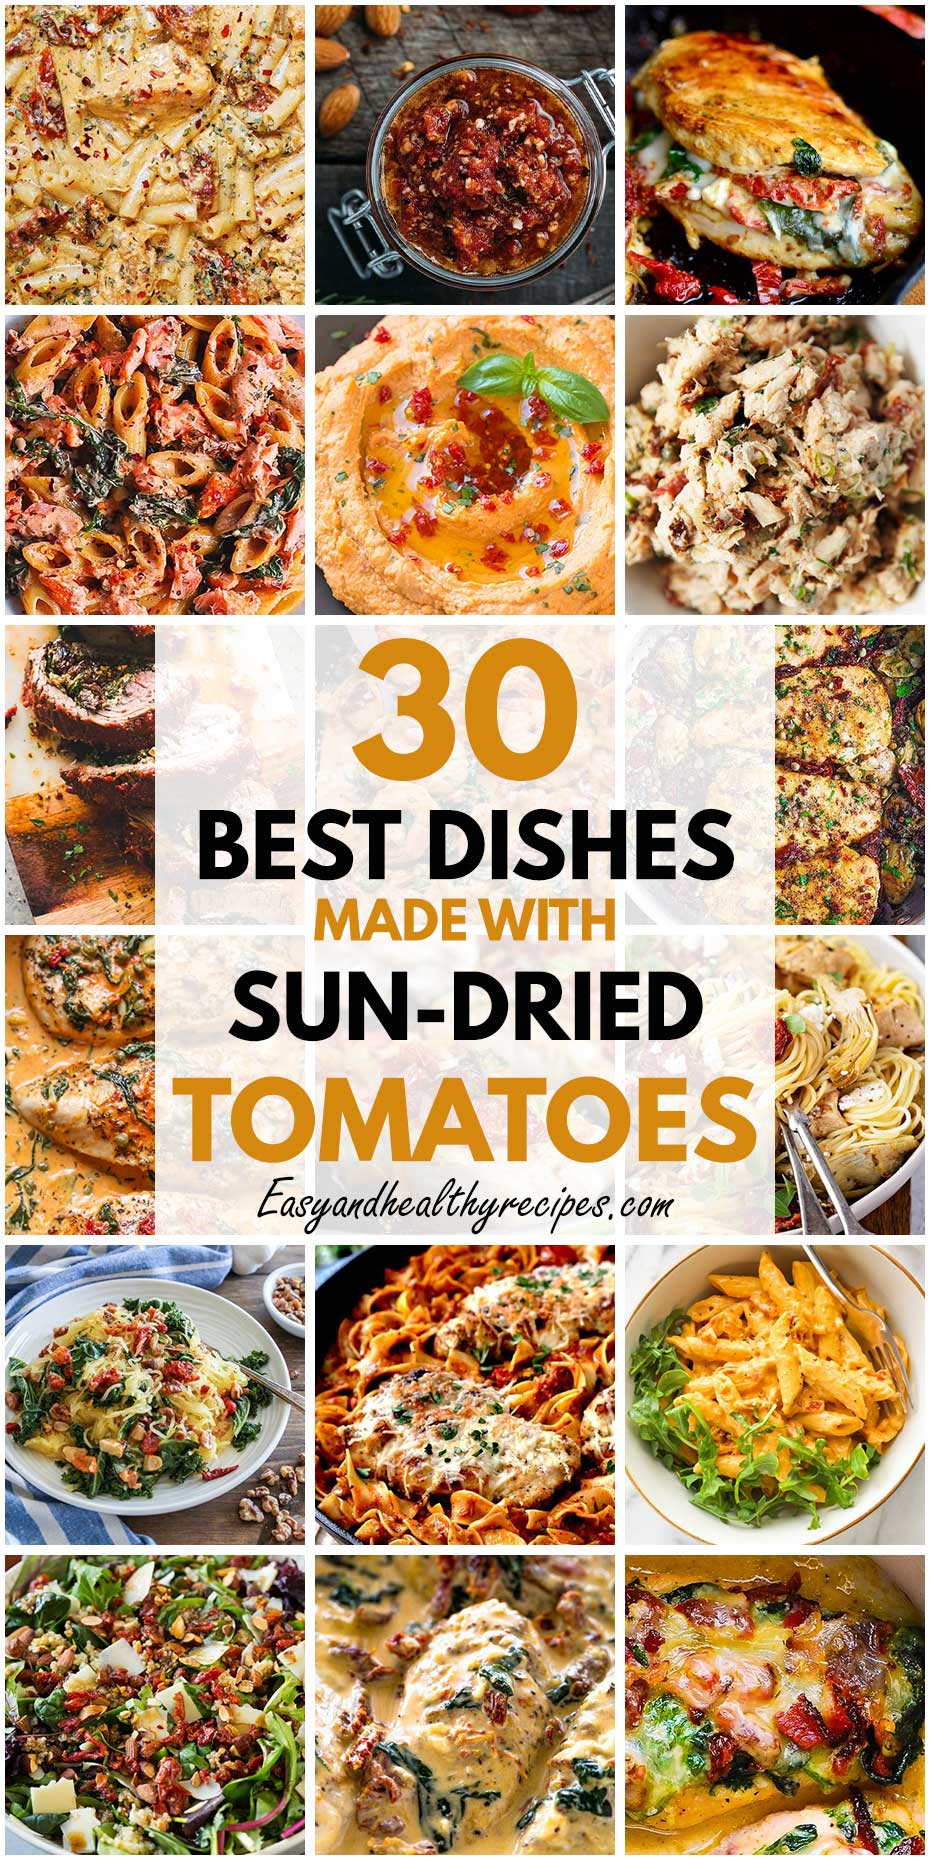 30 Best Dishes Made With Sun-Dried Tomatoes